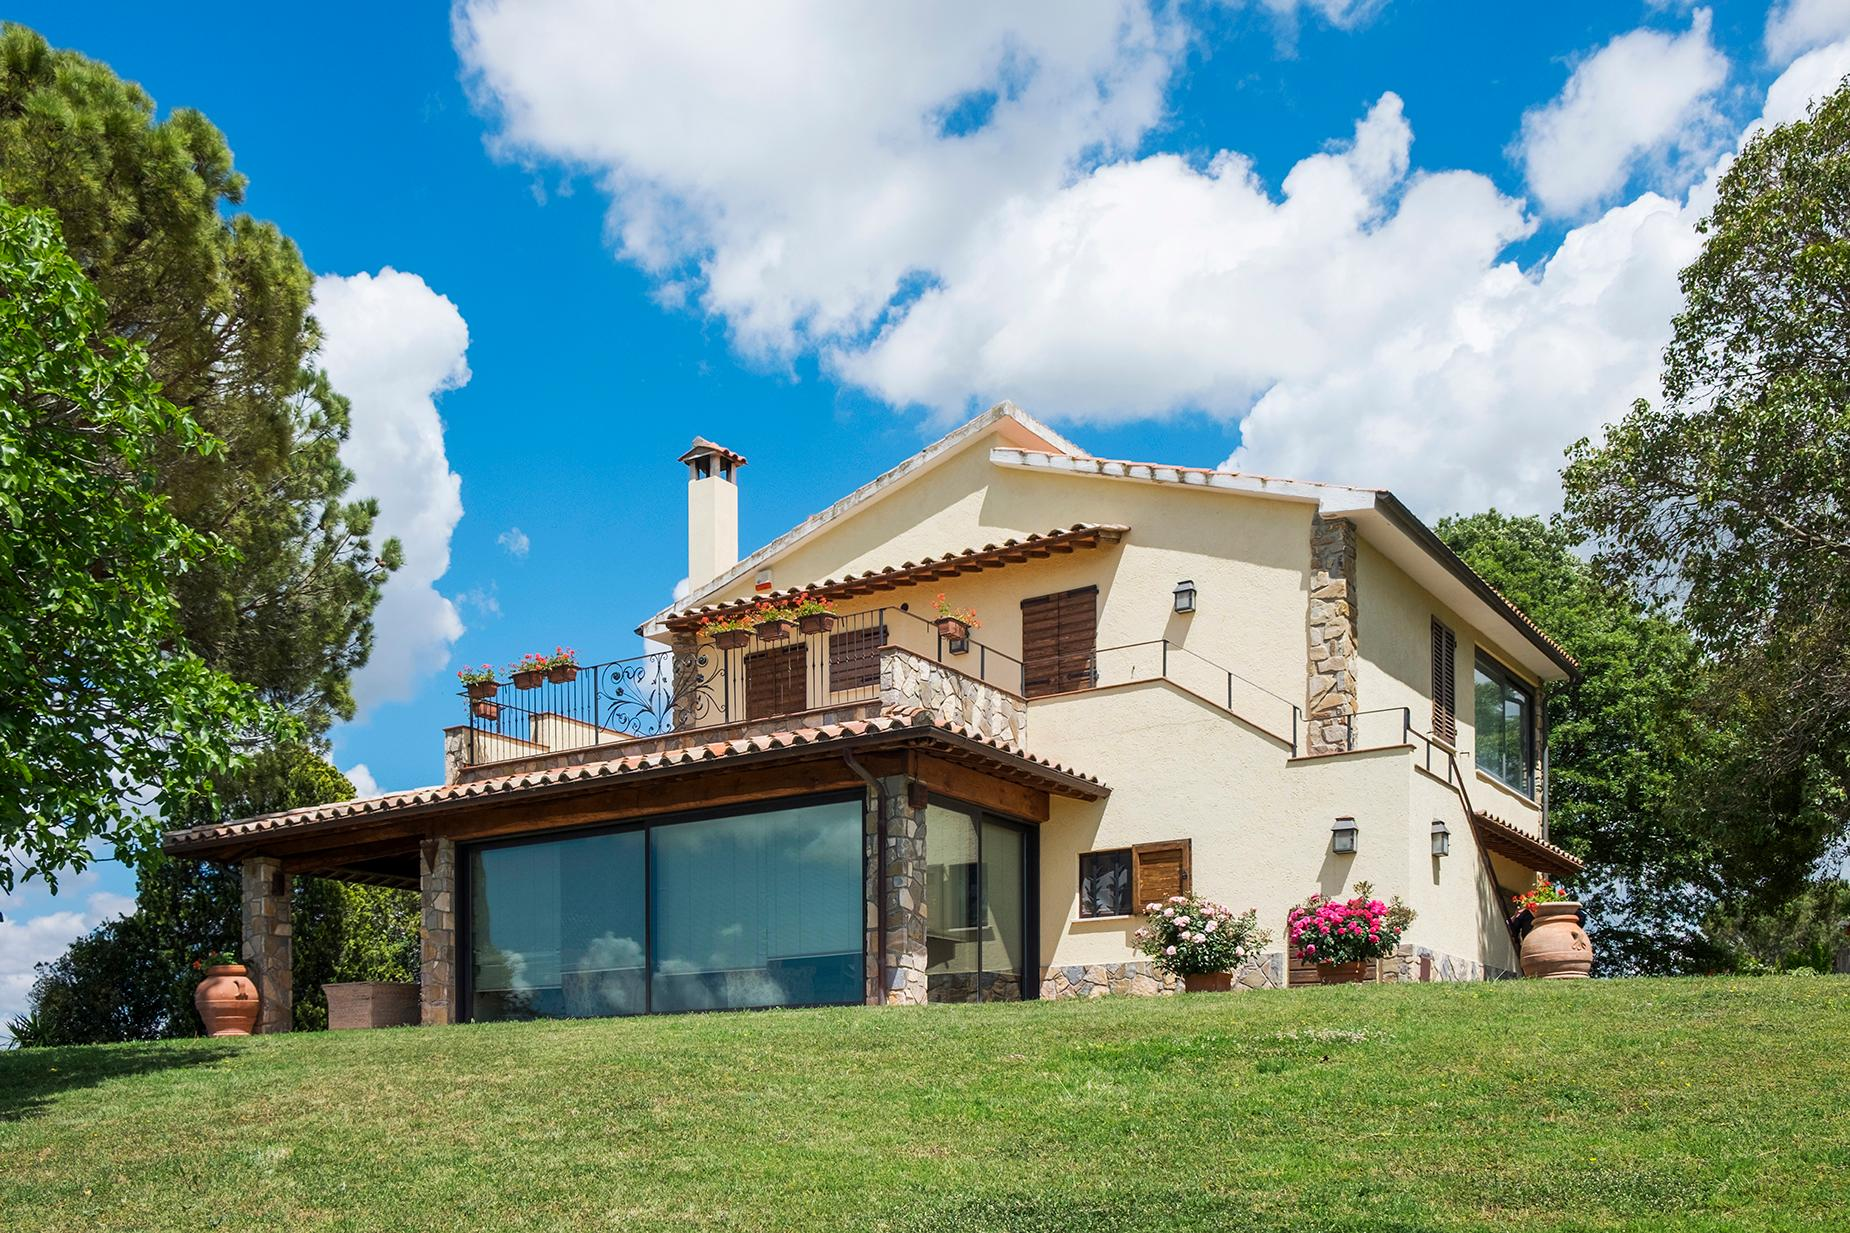 Finely restored farmhouse in the Tuscan countryside - 12